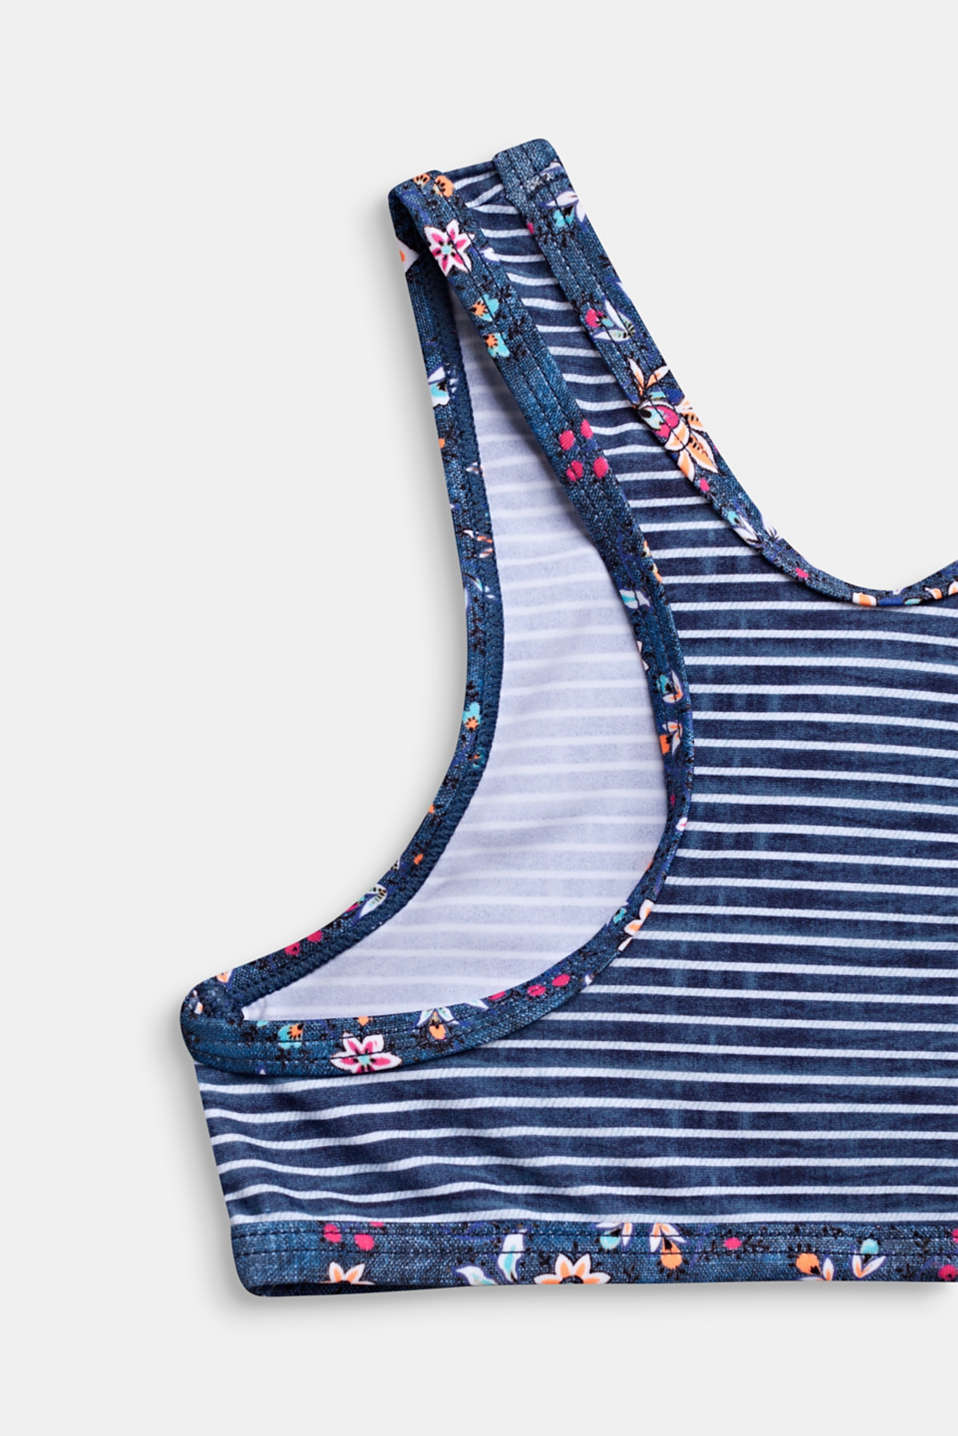 Crop top bikini with stripes and flowers, GREY BLUE, detail image number 2